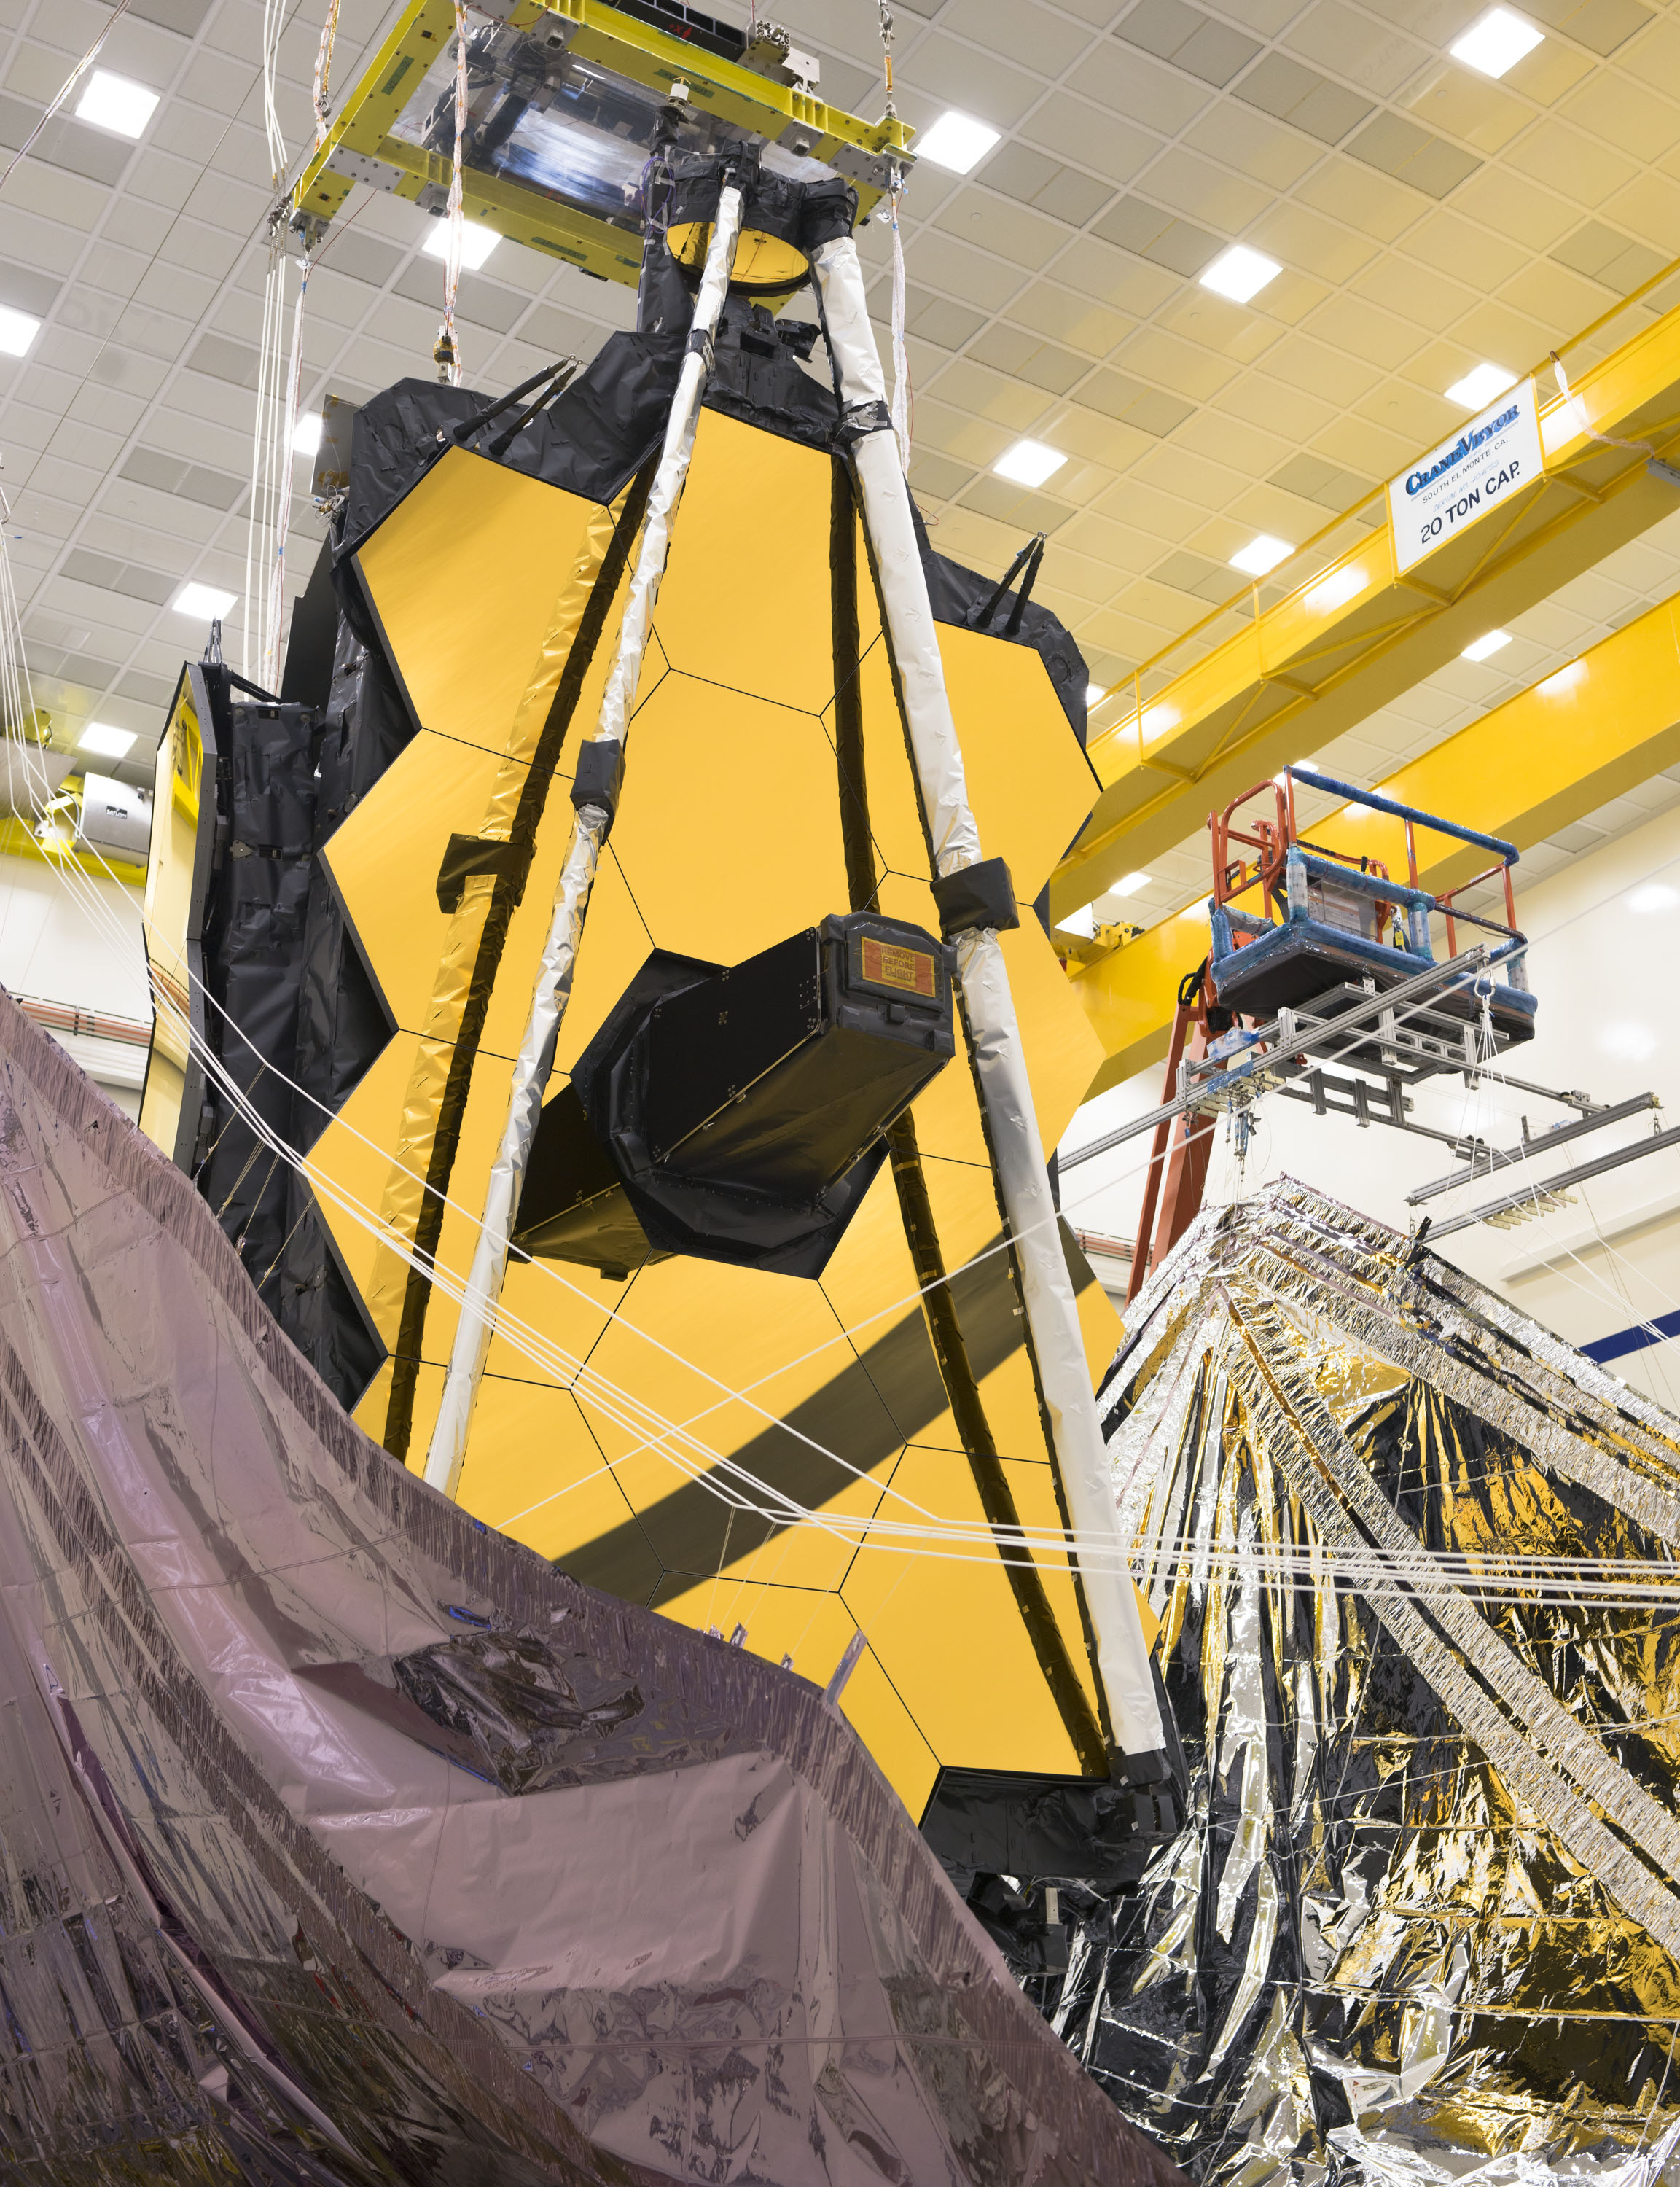 Engineers working on NASA's James Webb Space Telescope have successfully folded and packed its sunshield for its upcoming million-mile (roughly 1.5 million kilometer) journey, which begins later this year.